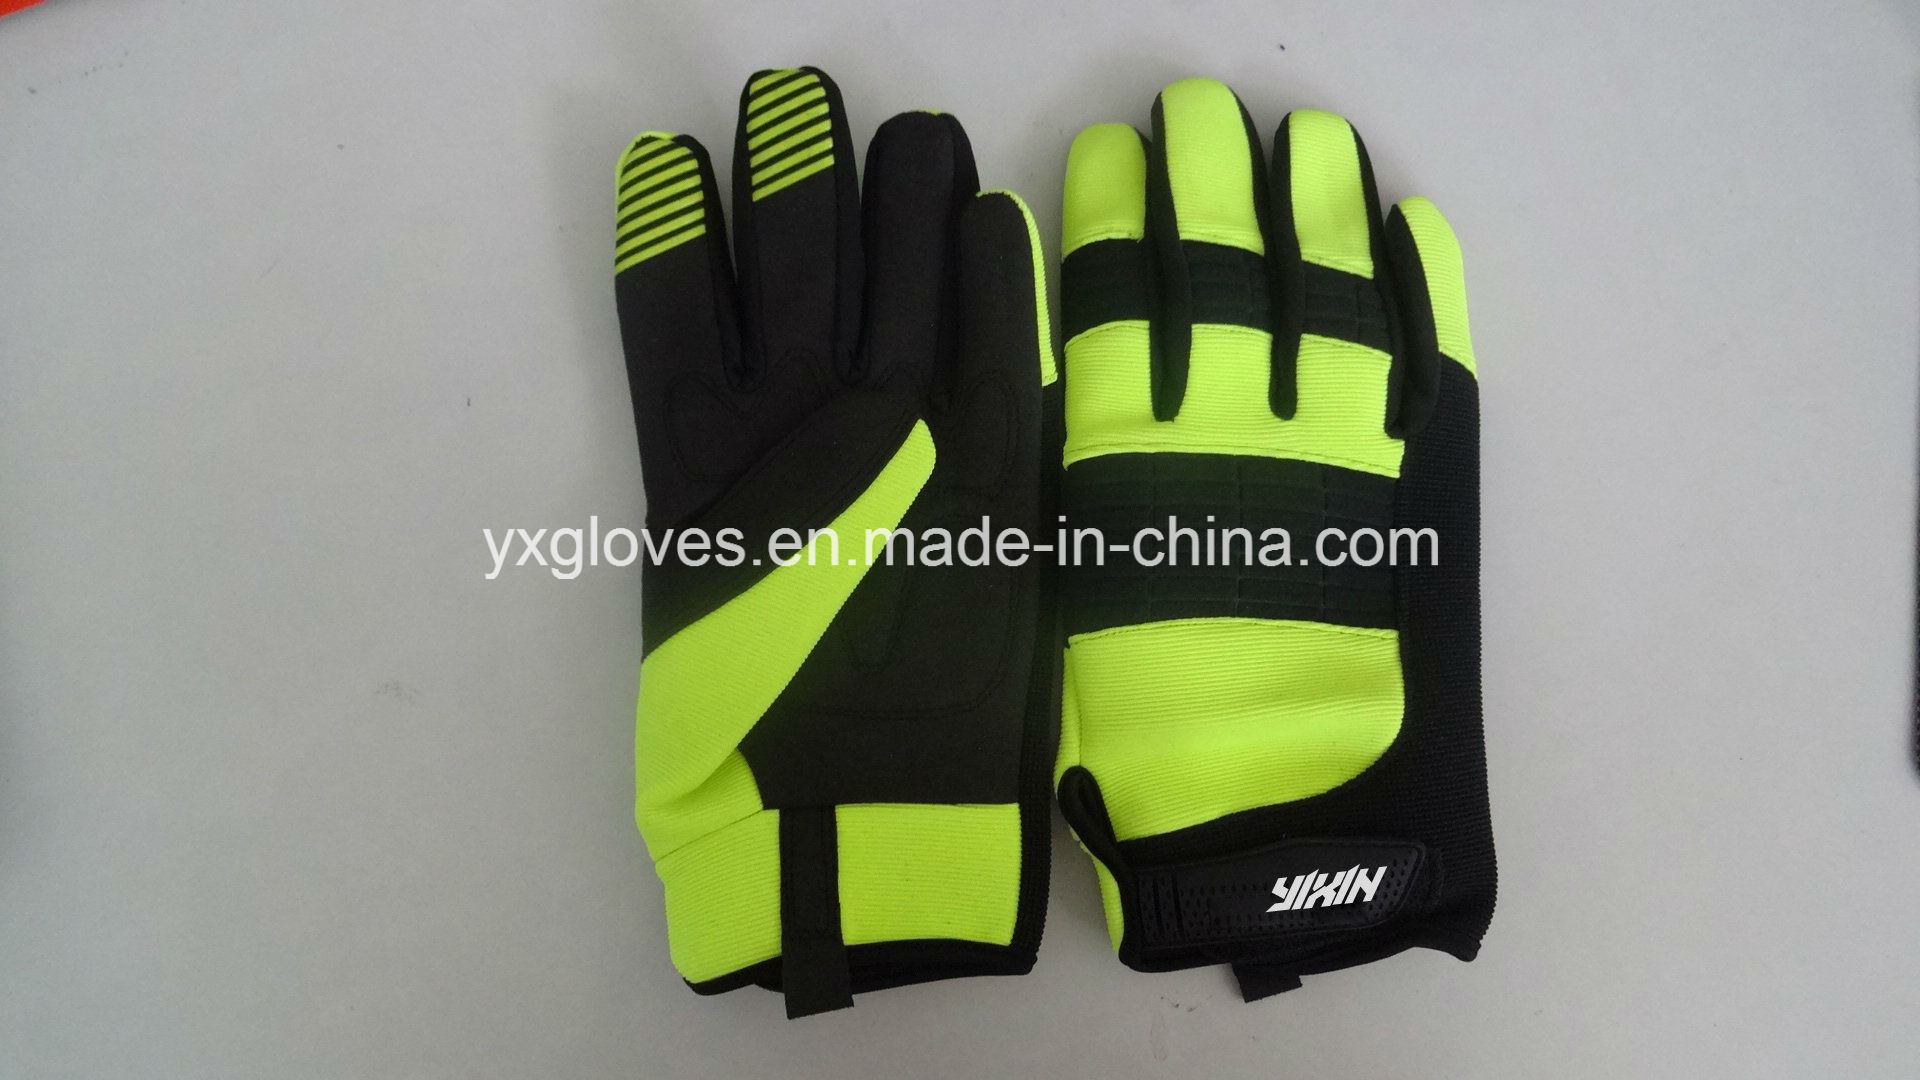 Mechanic Glove-Construction Glove-Safety Glove-Working Glove-Industrial Glove-Labor Glove